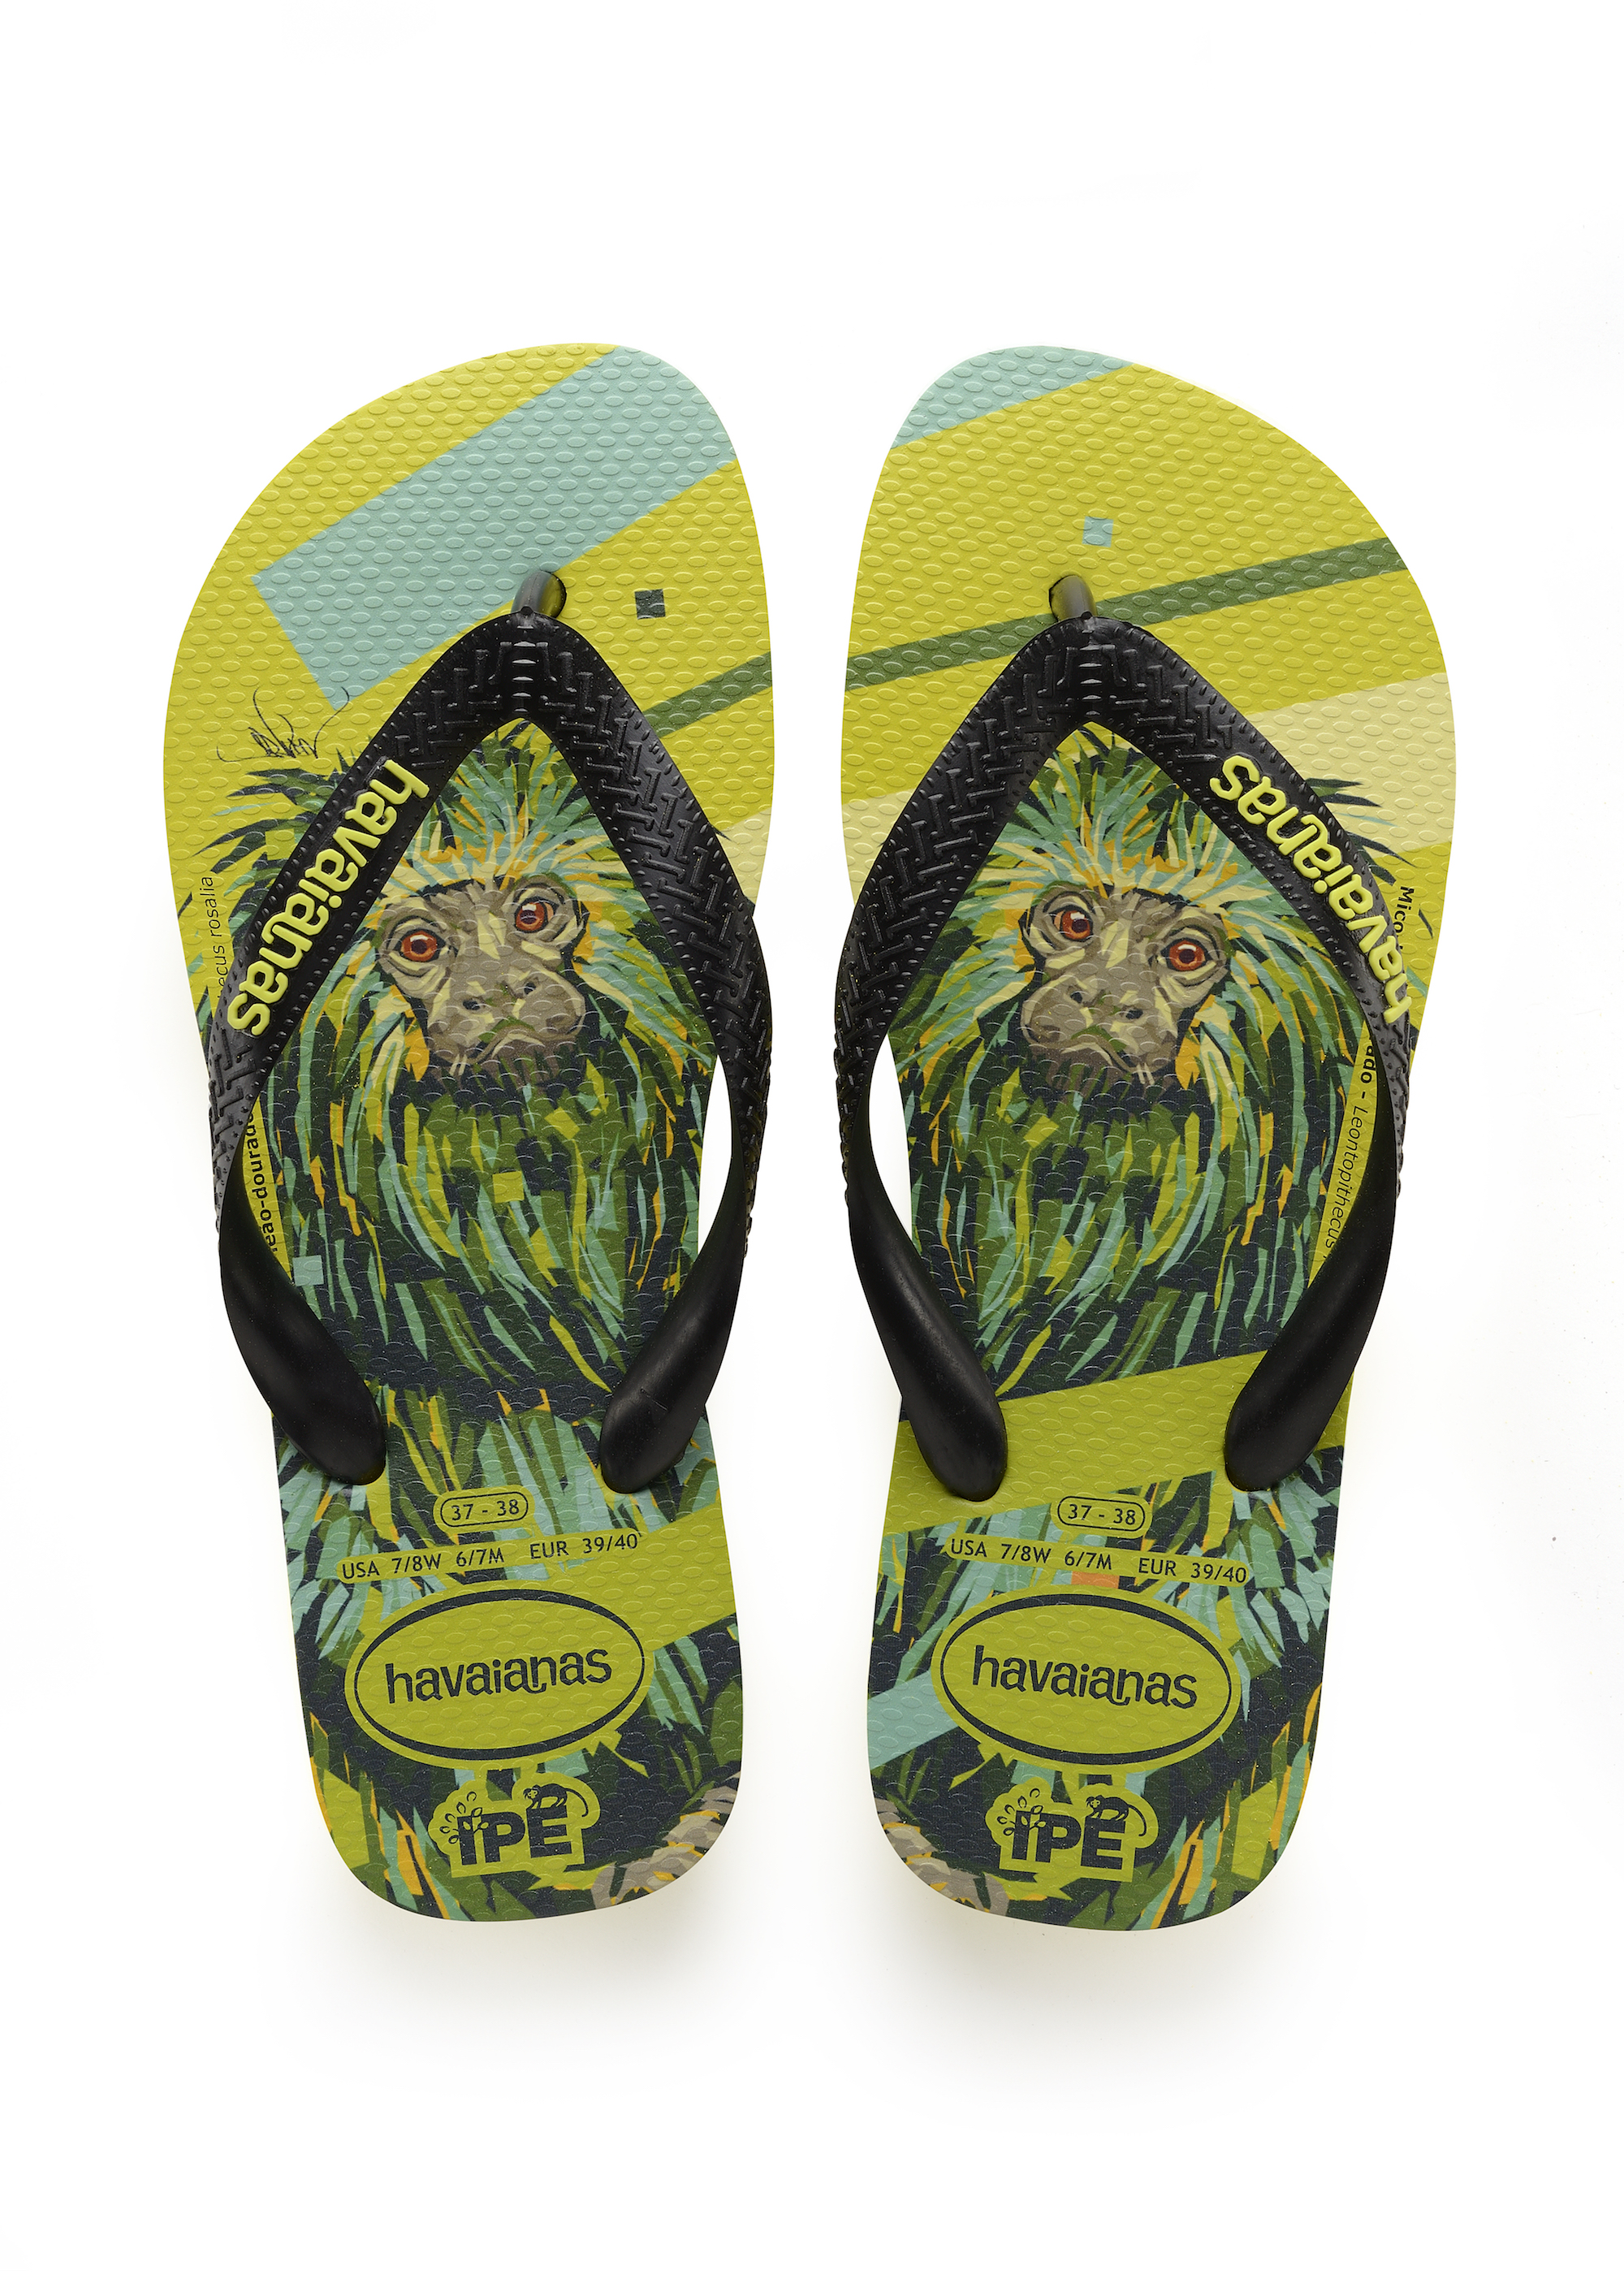 Havaianas x Arlin Graff collaboration monkey